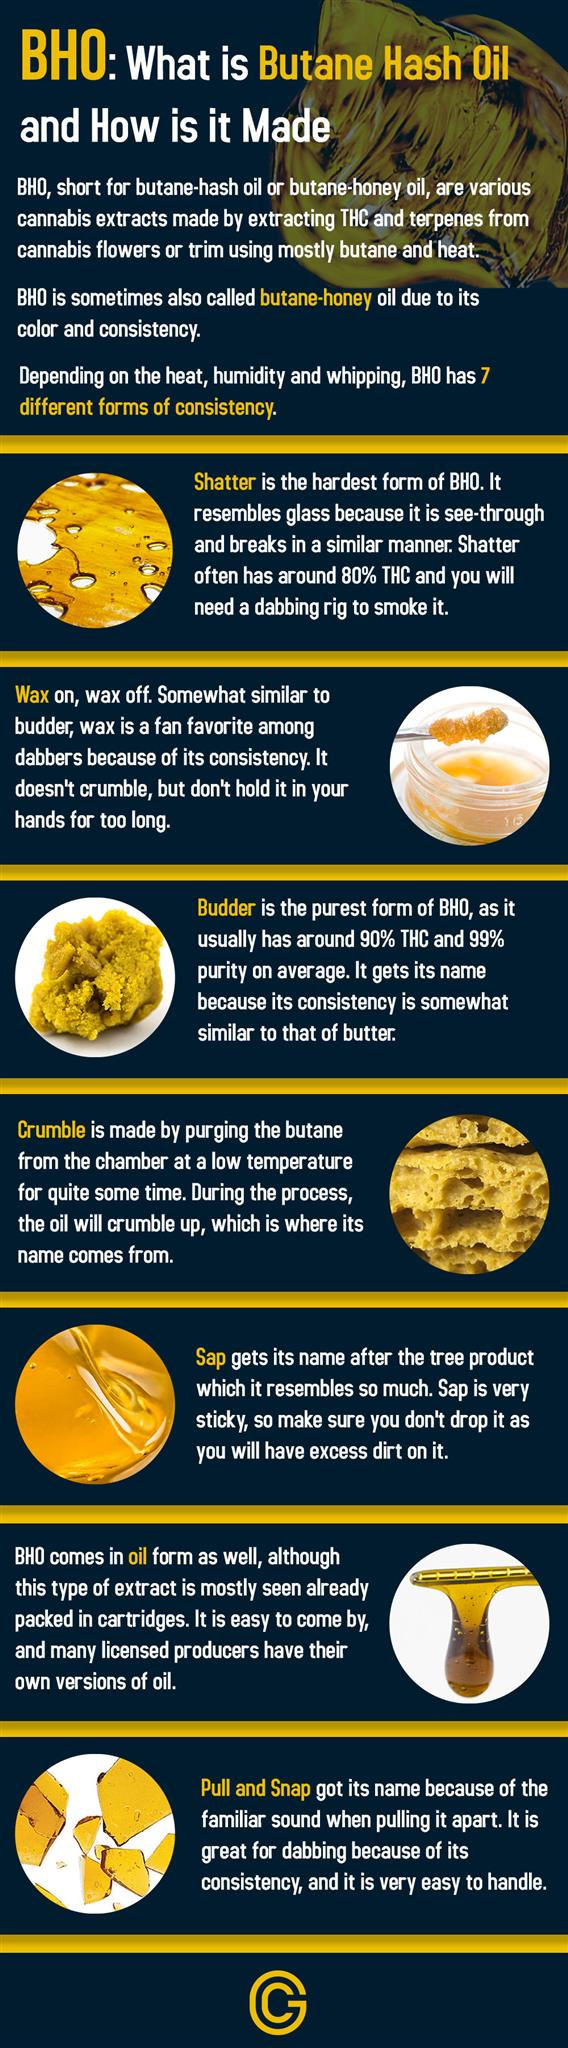 Different types of BHO